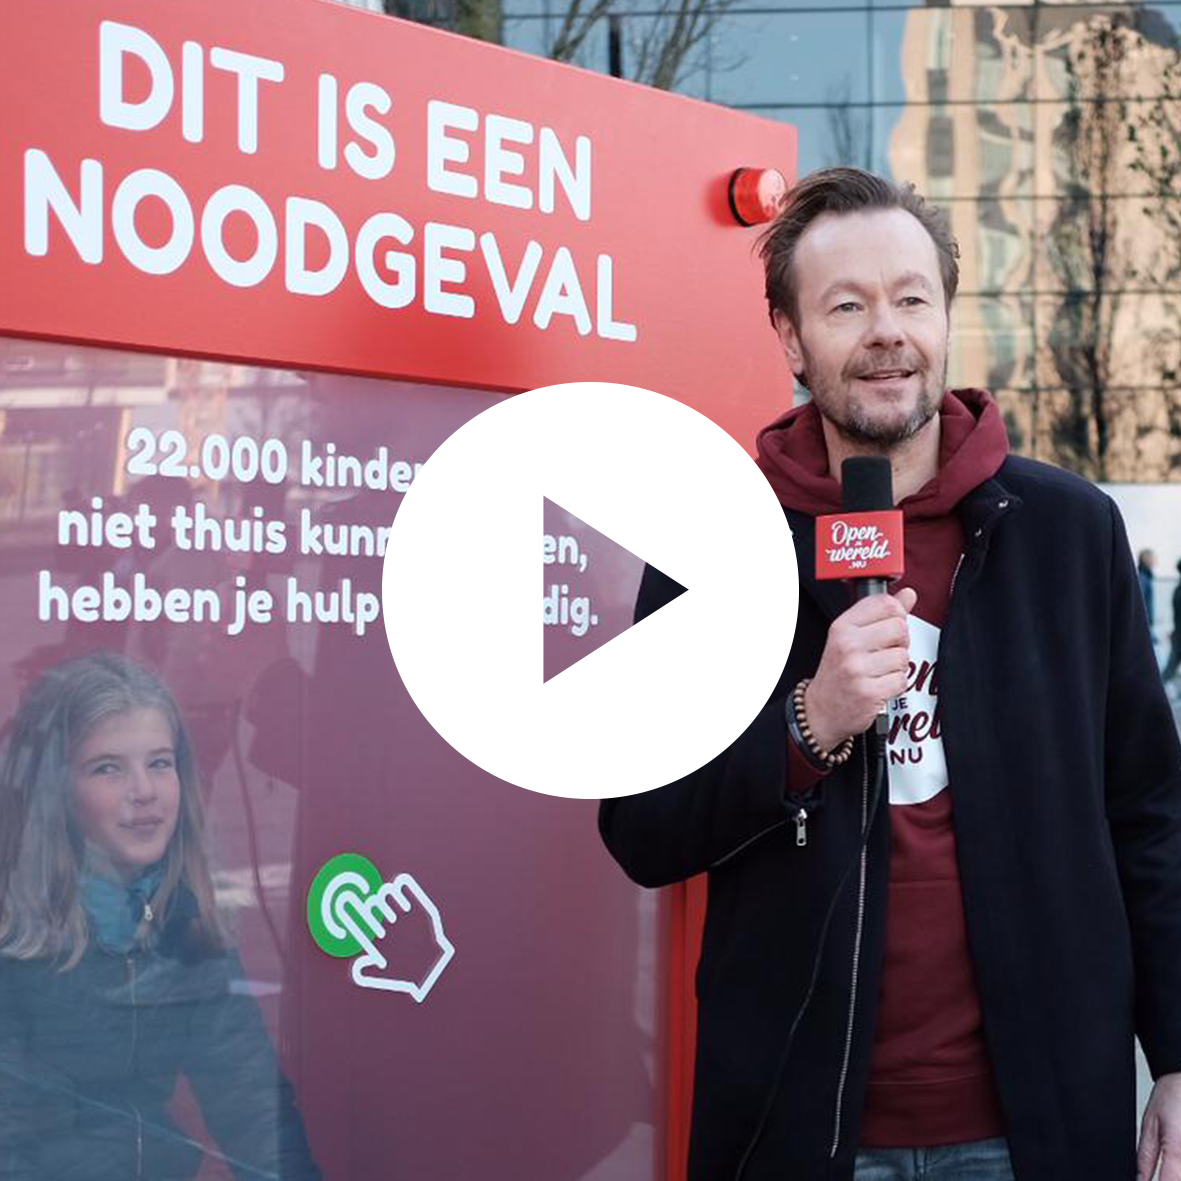 Kick-off video national foster care campaign: openjewereld.nu